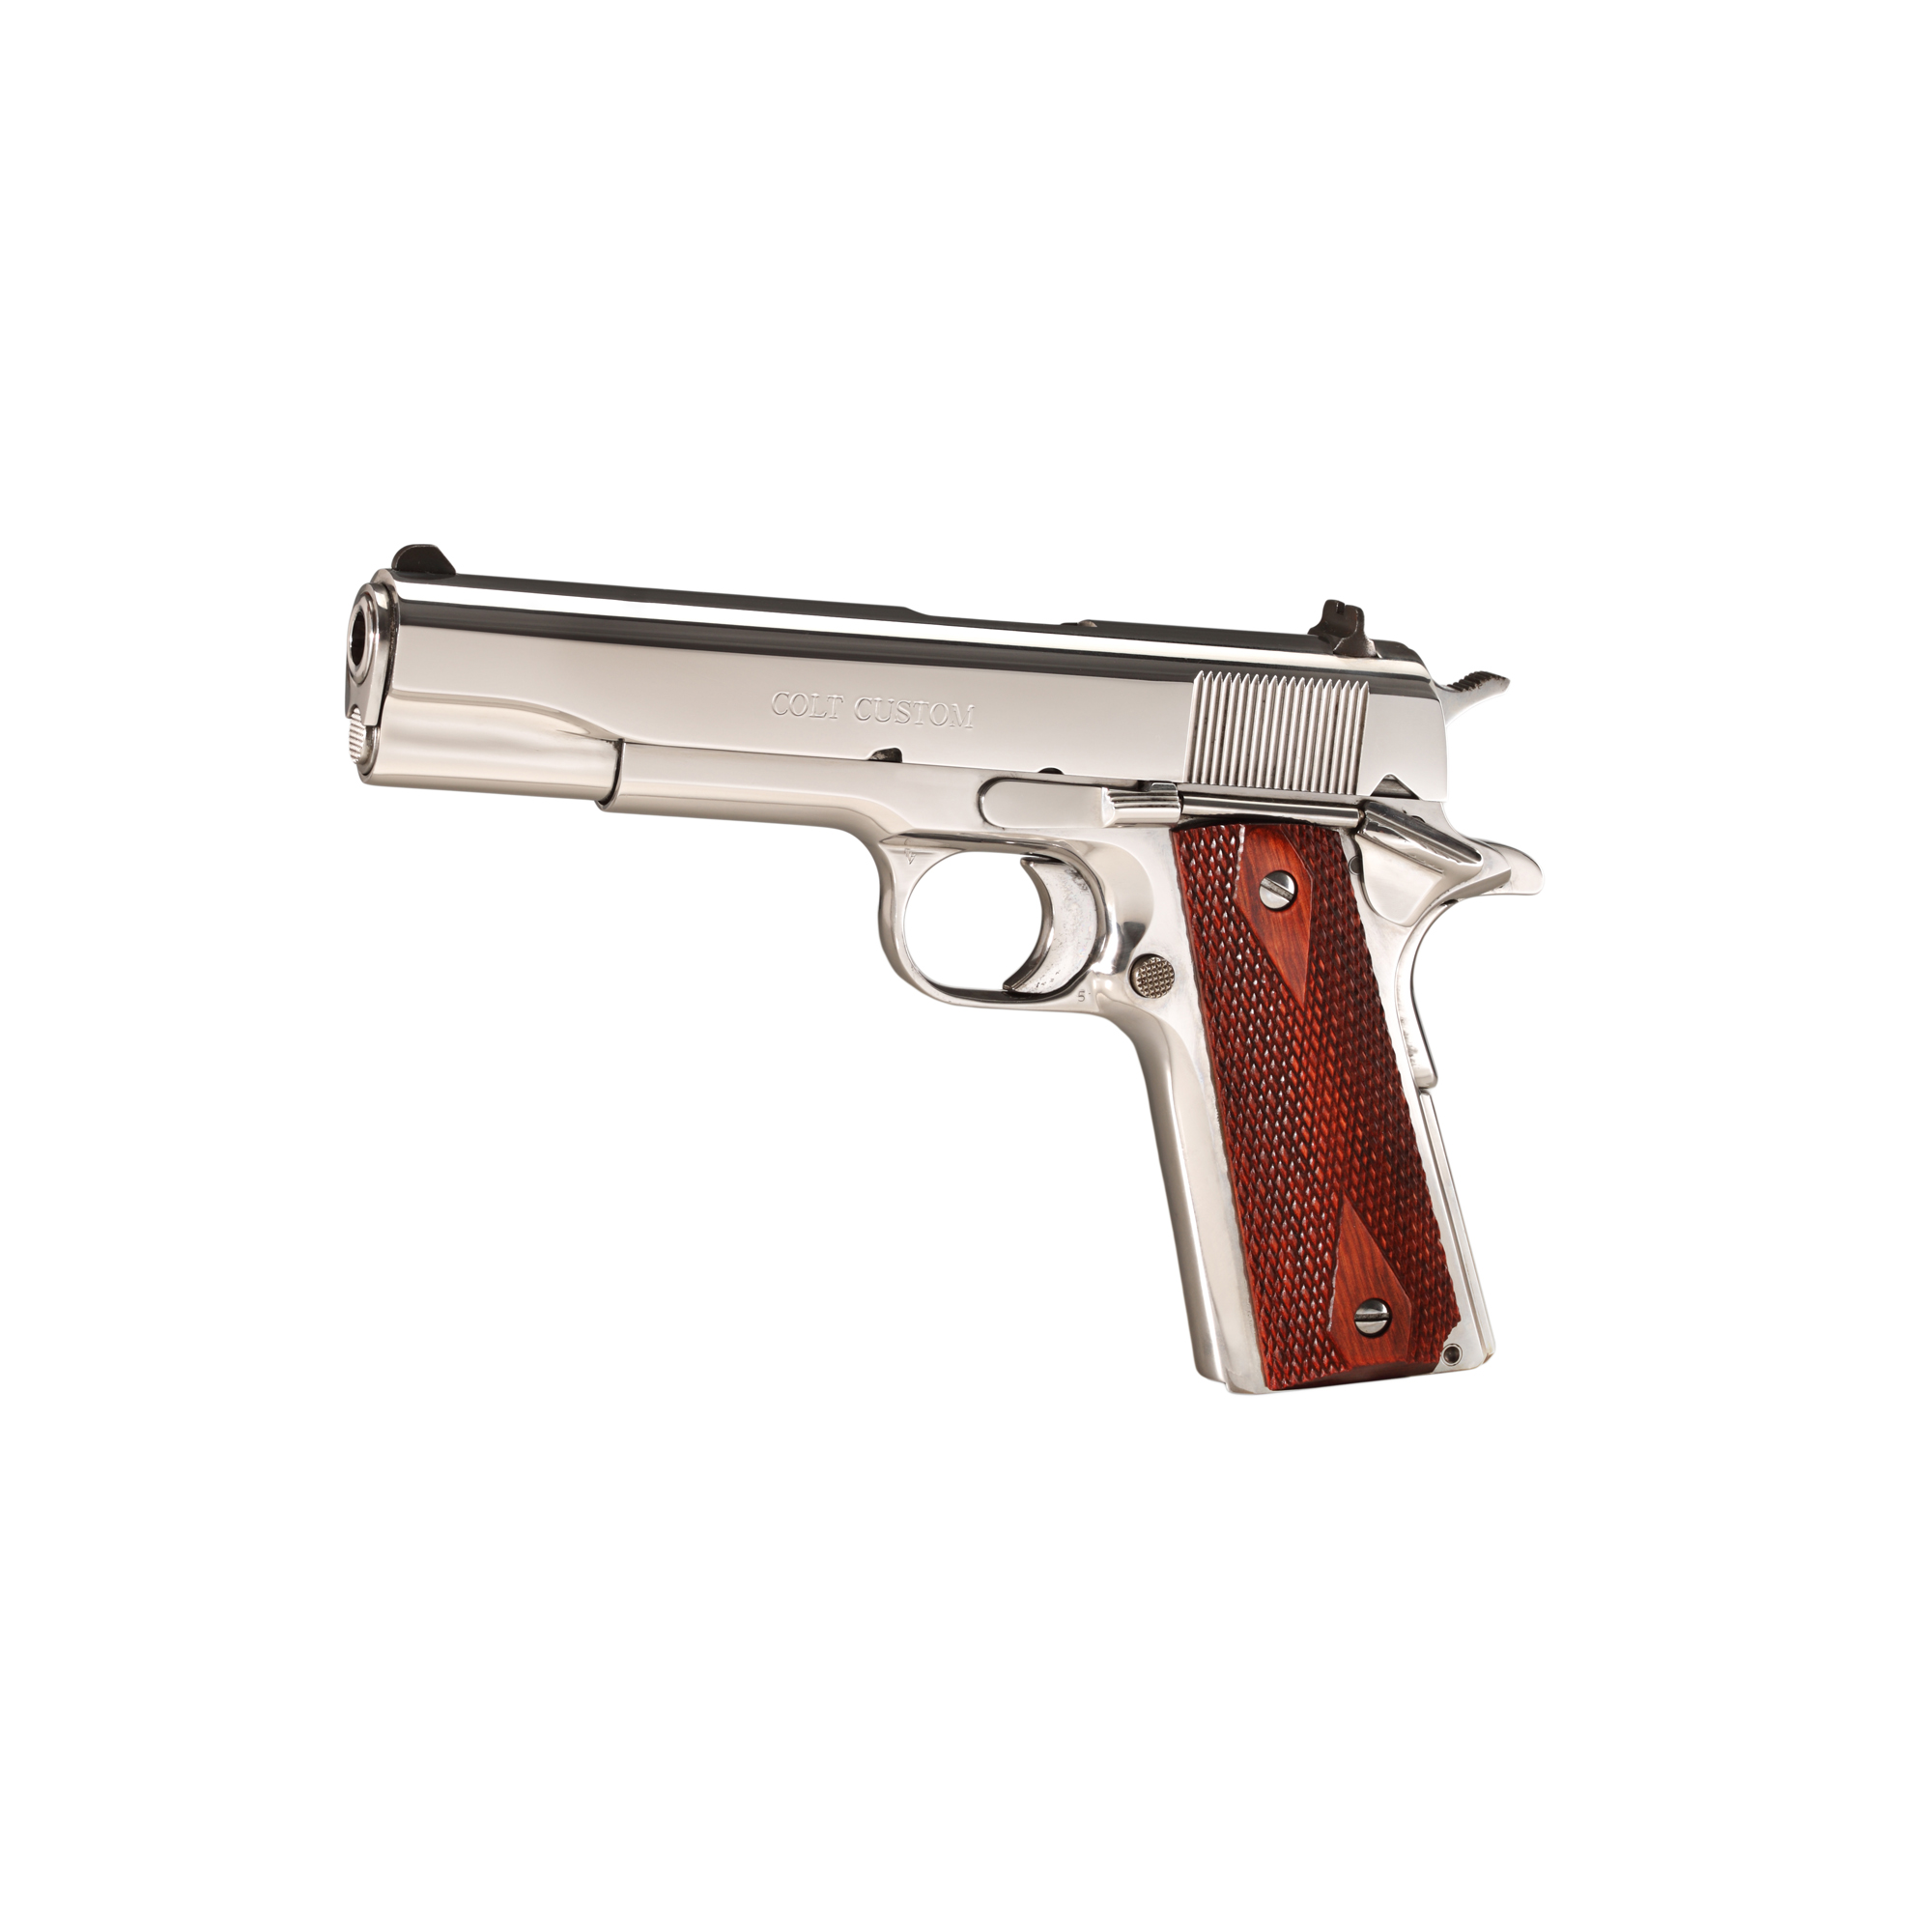 """The Colt M1991A1 and M1991A are direct 3rd and 4th generation descendants of the """"often imitated but never duplicated"""" Colt M1911 classic automatic pistol. It was selected as the U.S. military service sidearm in a head to head competition. The superior Colt was found to be"""" more reliable"""" more durable"""" more easily disassembled"""" less fatiguing and more accurate."""